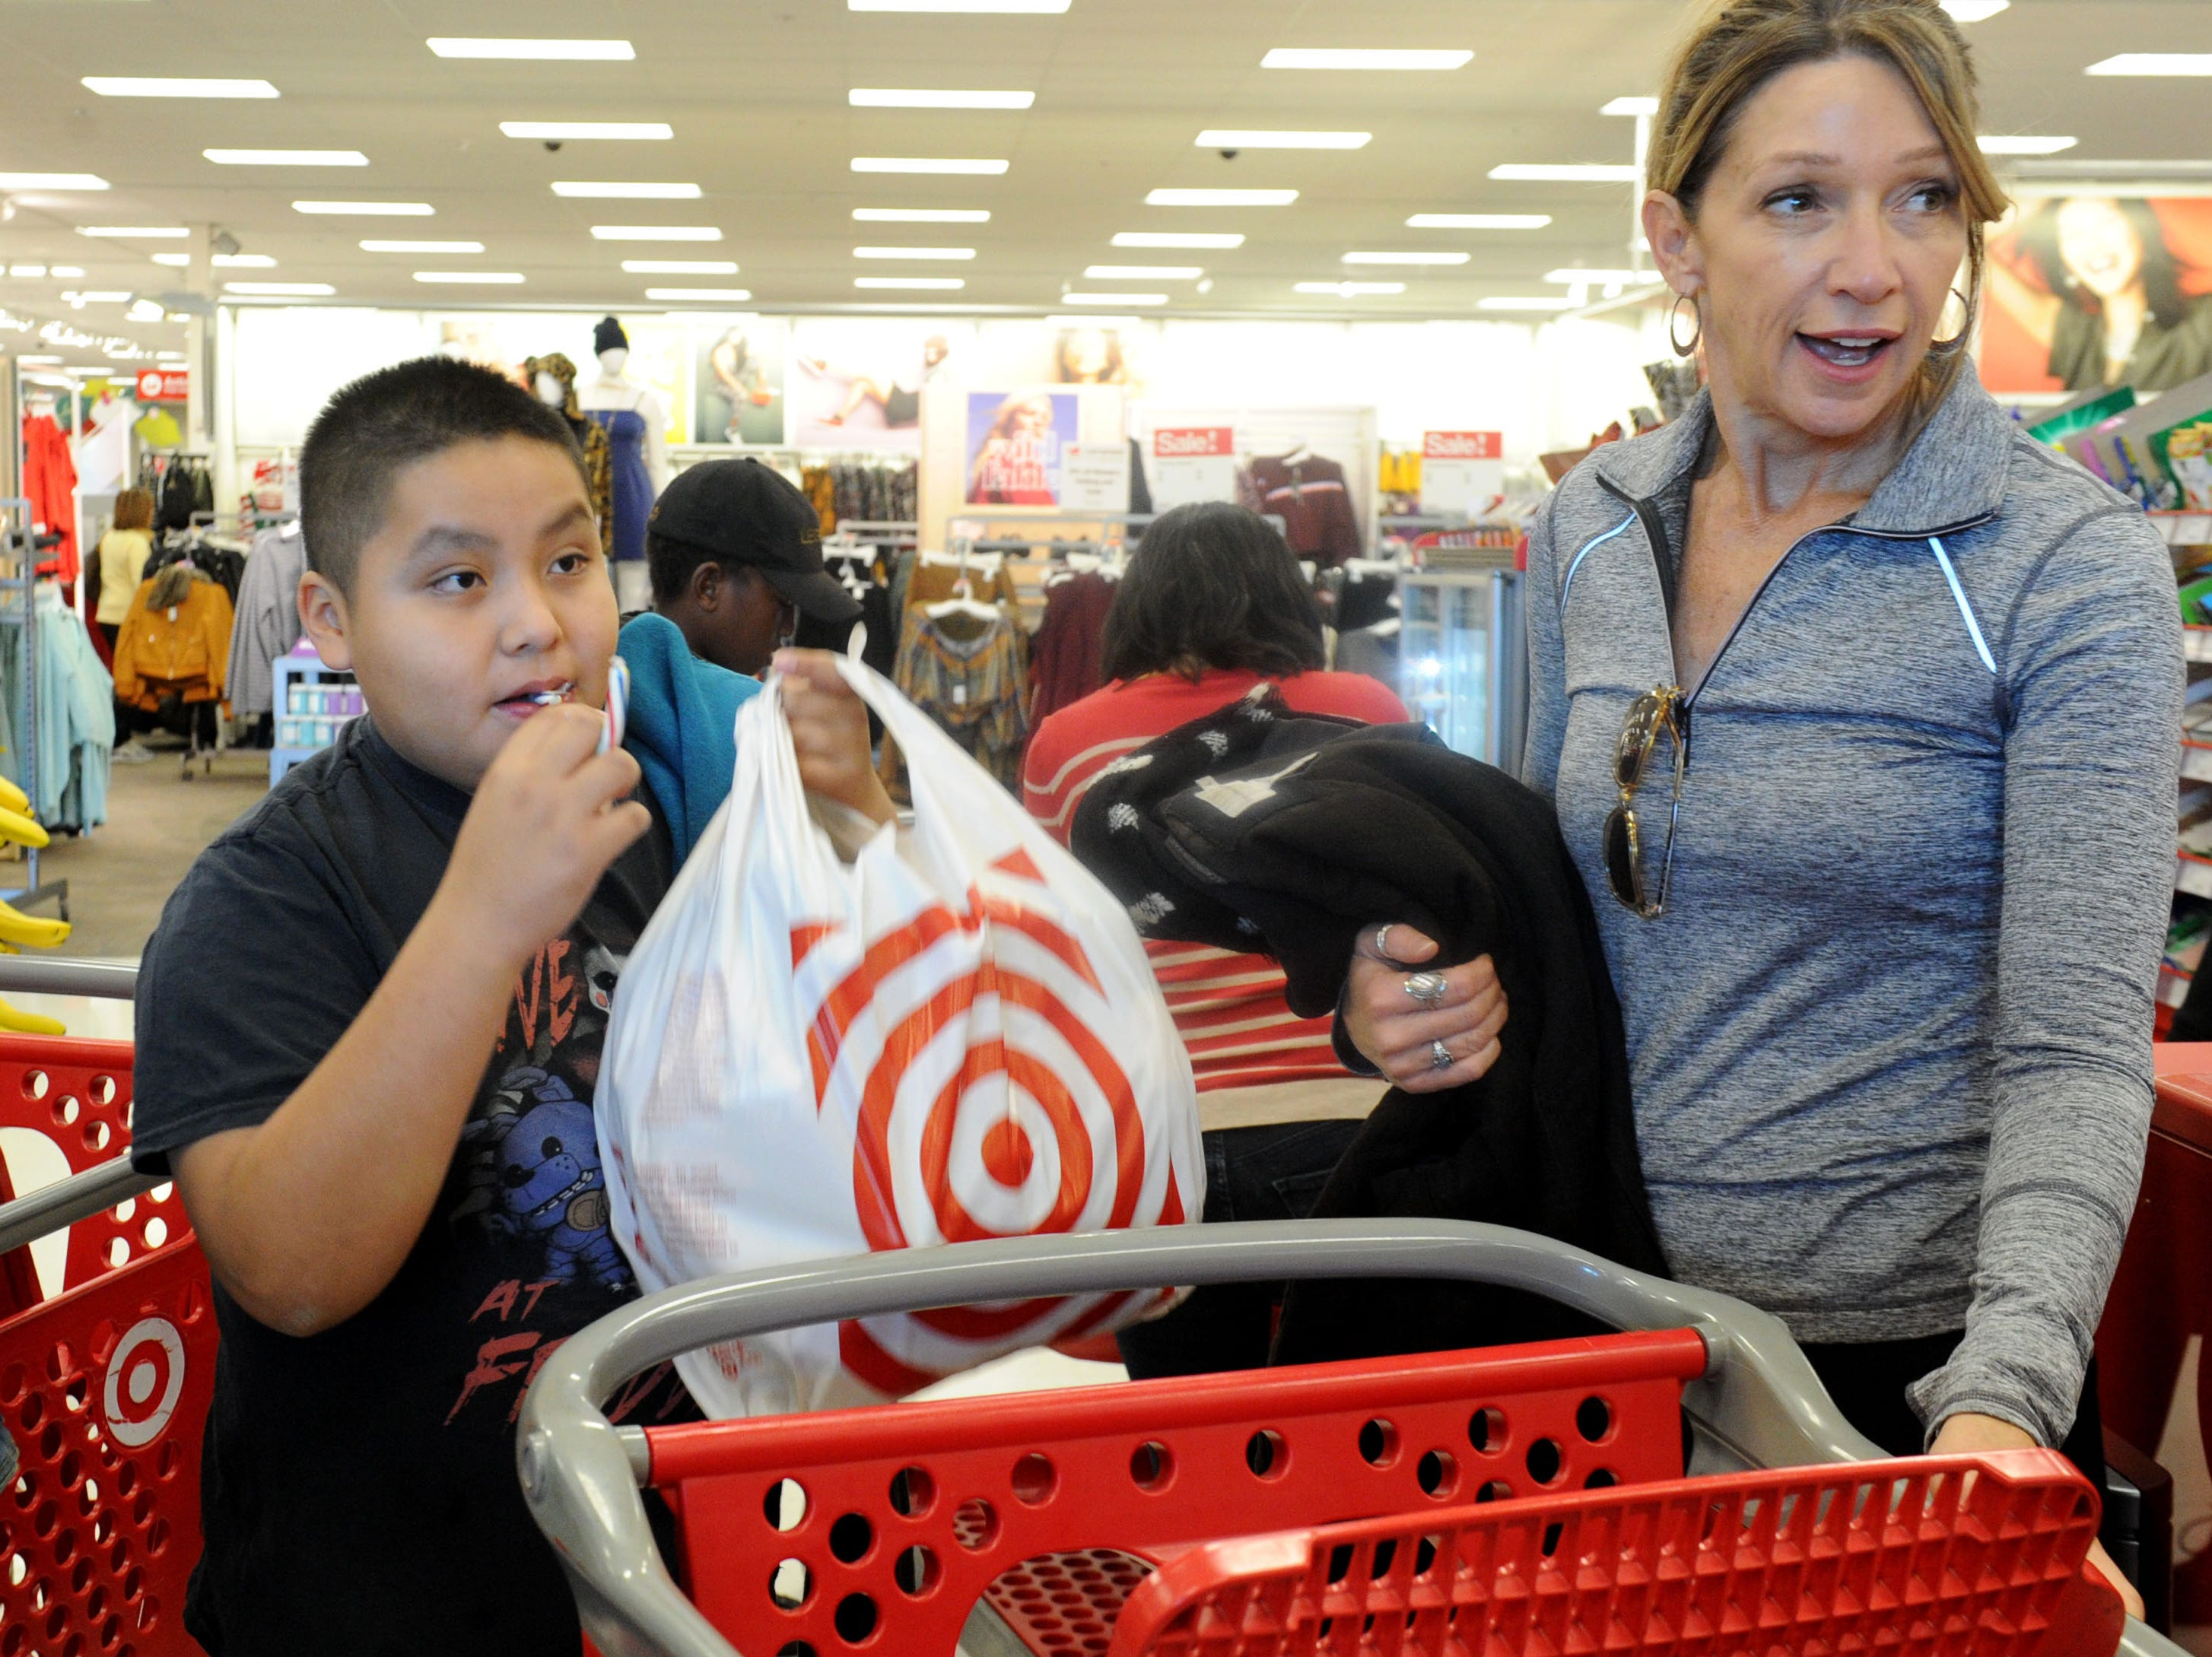 Erin Culbertson, with the Rotary Club of Westlake Village, finishes shopping with Roberto Aldana. The club hosted a shopping spree at Target for 36 members of the Boys & Girls Club. The children, each with $110 to spend, were paired with 36 volunteers, and they also got two $10 gift cards so they could buy gifts for someone else.